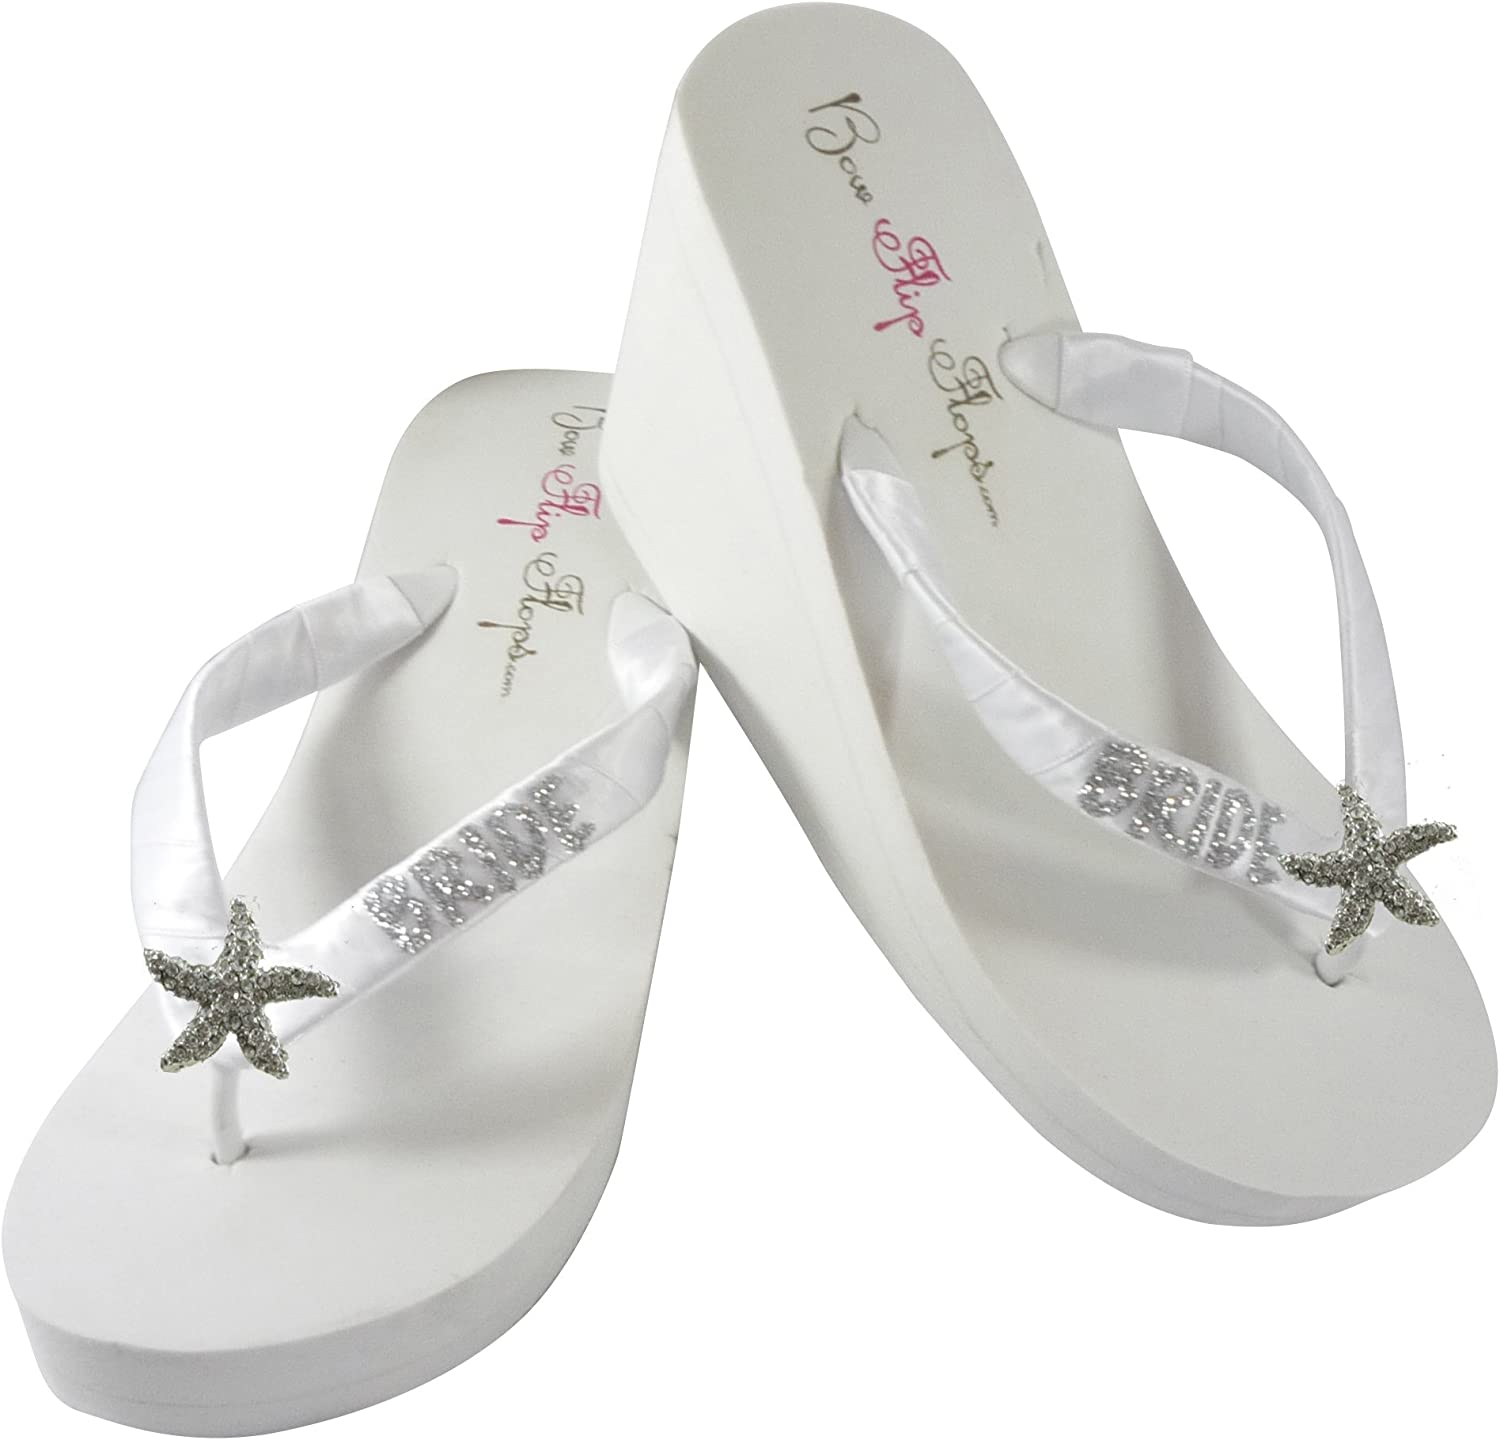 Starfish Glitter Wedding Flip Flops for Bride Wedge Bridal Ivory White Platform Heel shoes Sandals Beach